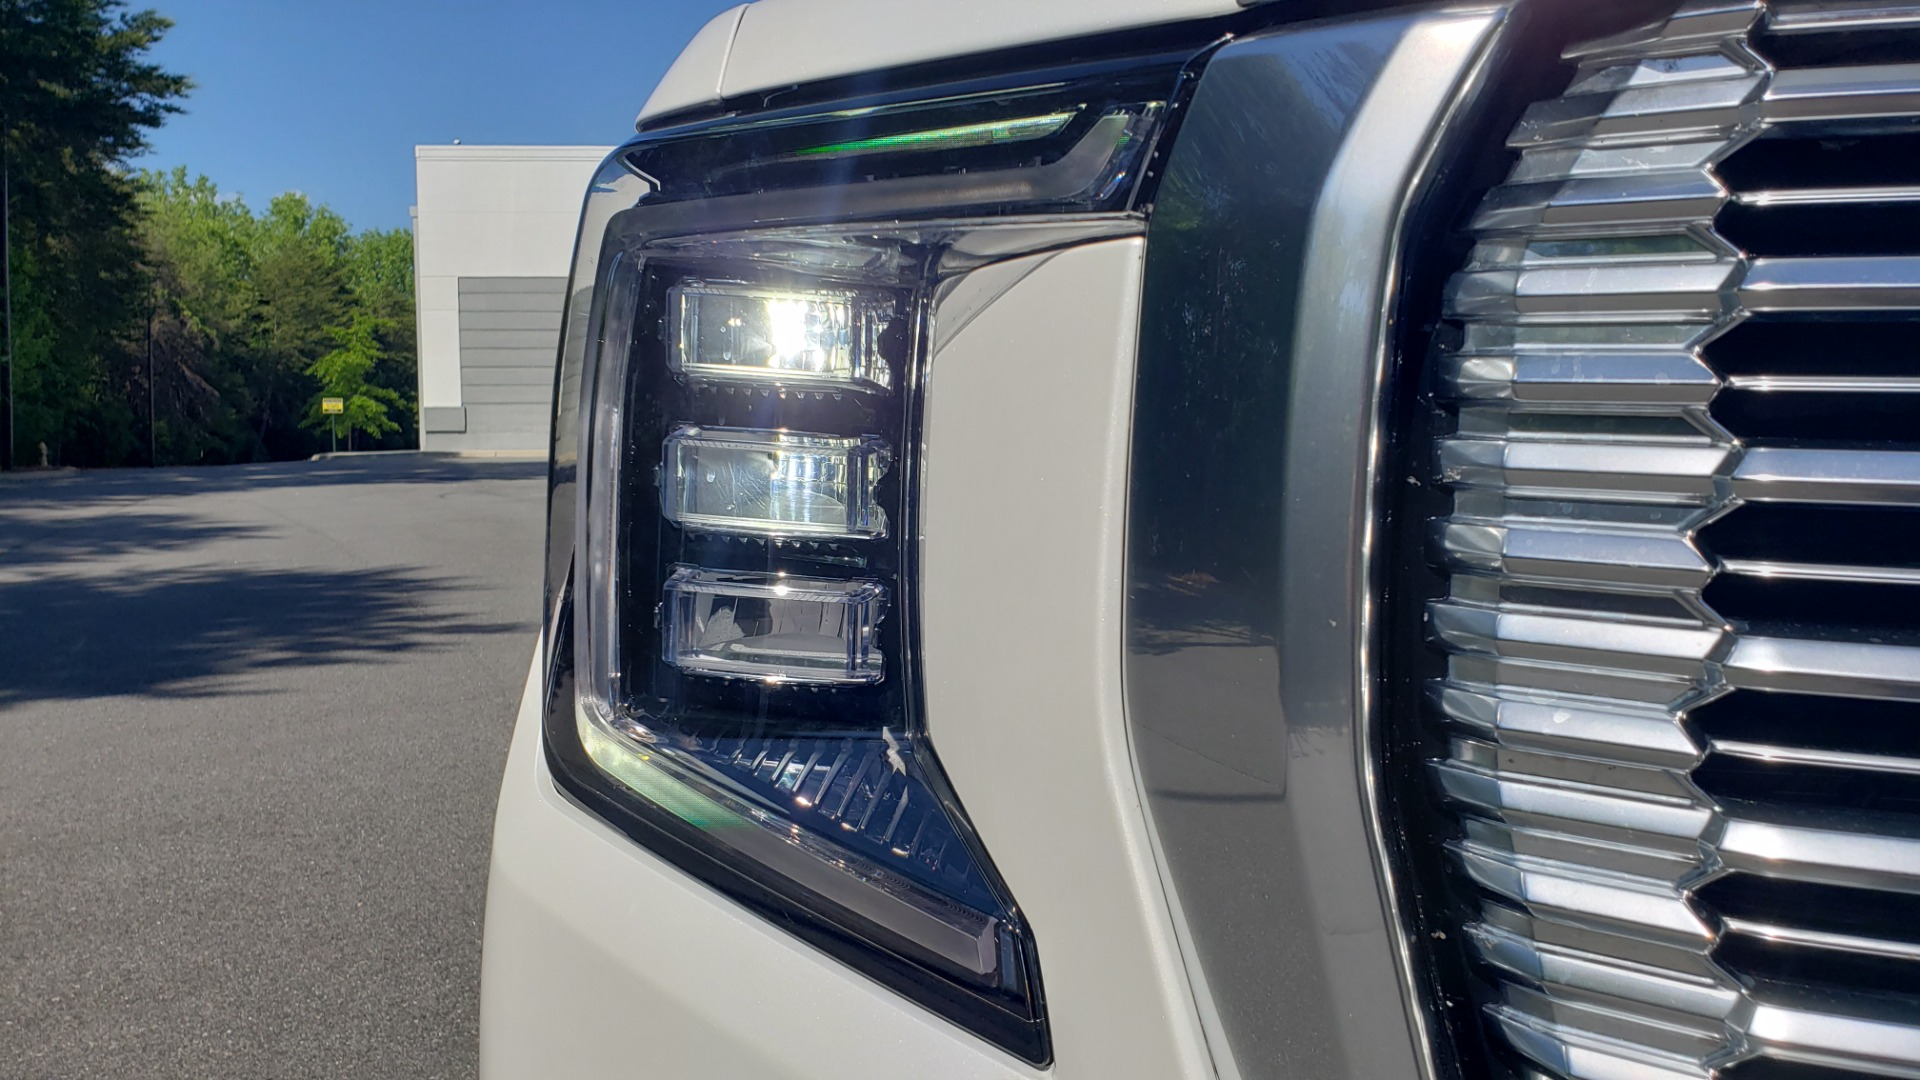 Used 2021 GMC YUKON DENALI PREM / 4WD / NAV / TECH / TRAILER / SECURITY / SUNROOF for sale Sold at Formula Imports in Charlotte NC 28227 77